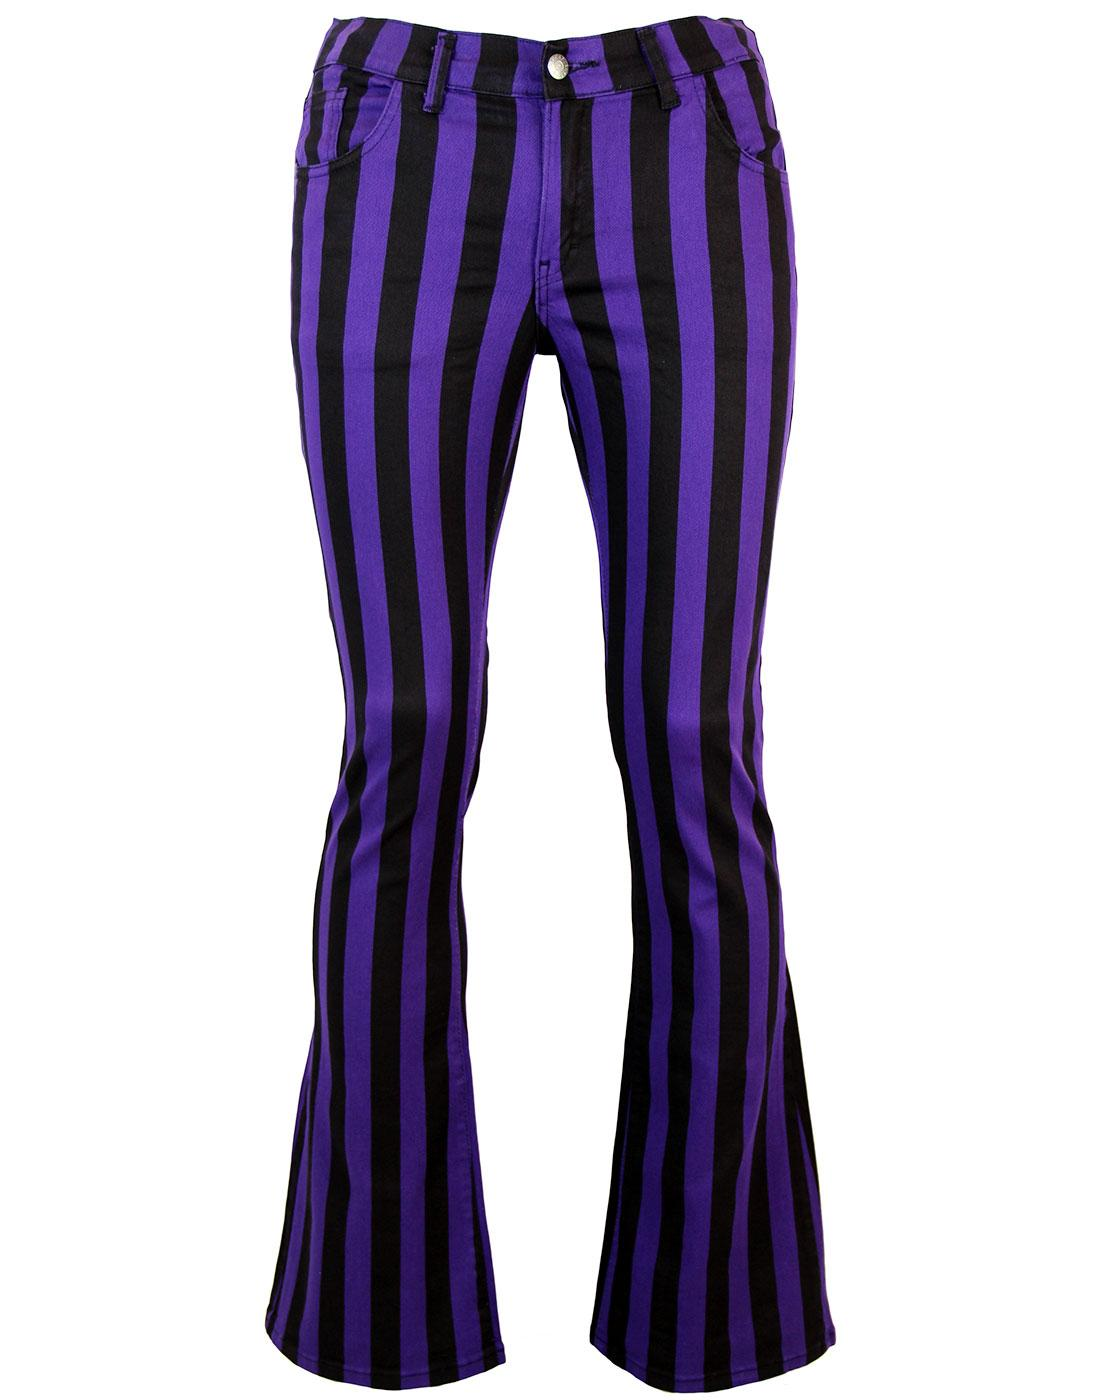 Holy Roller - Retro 60s Striped 70s Indie Flares P